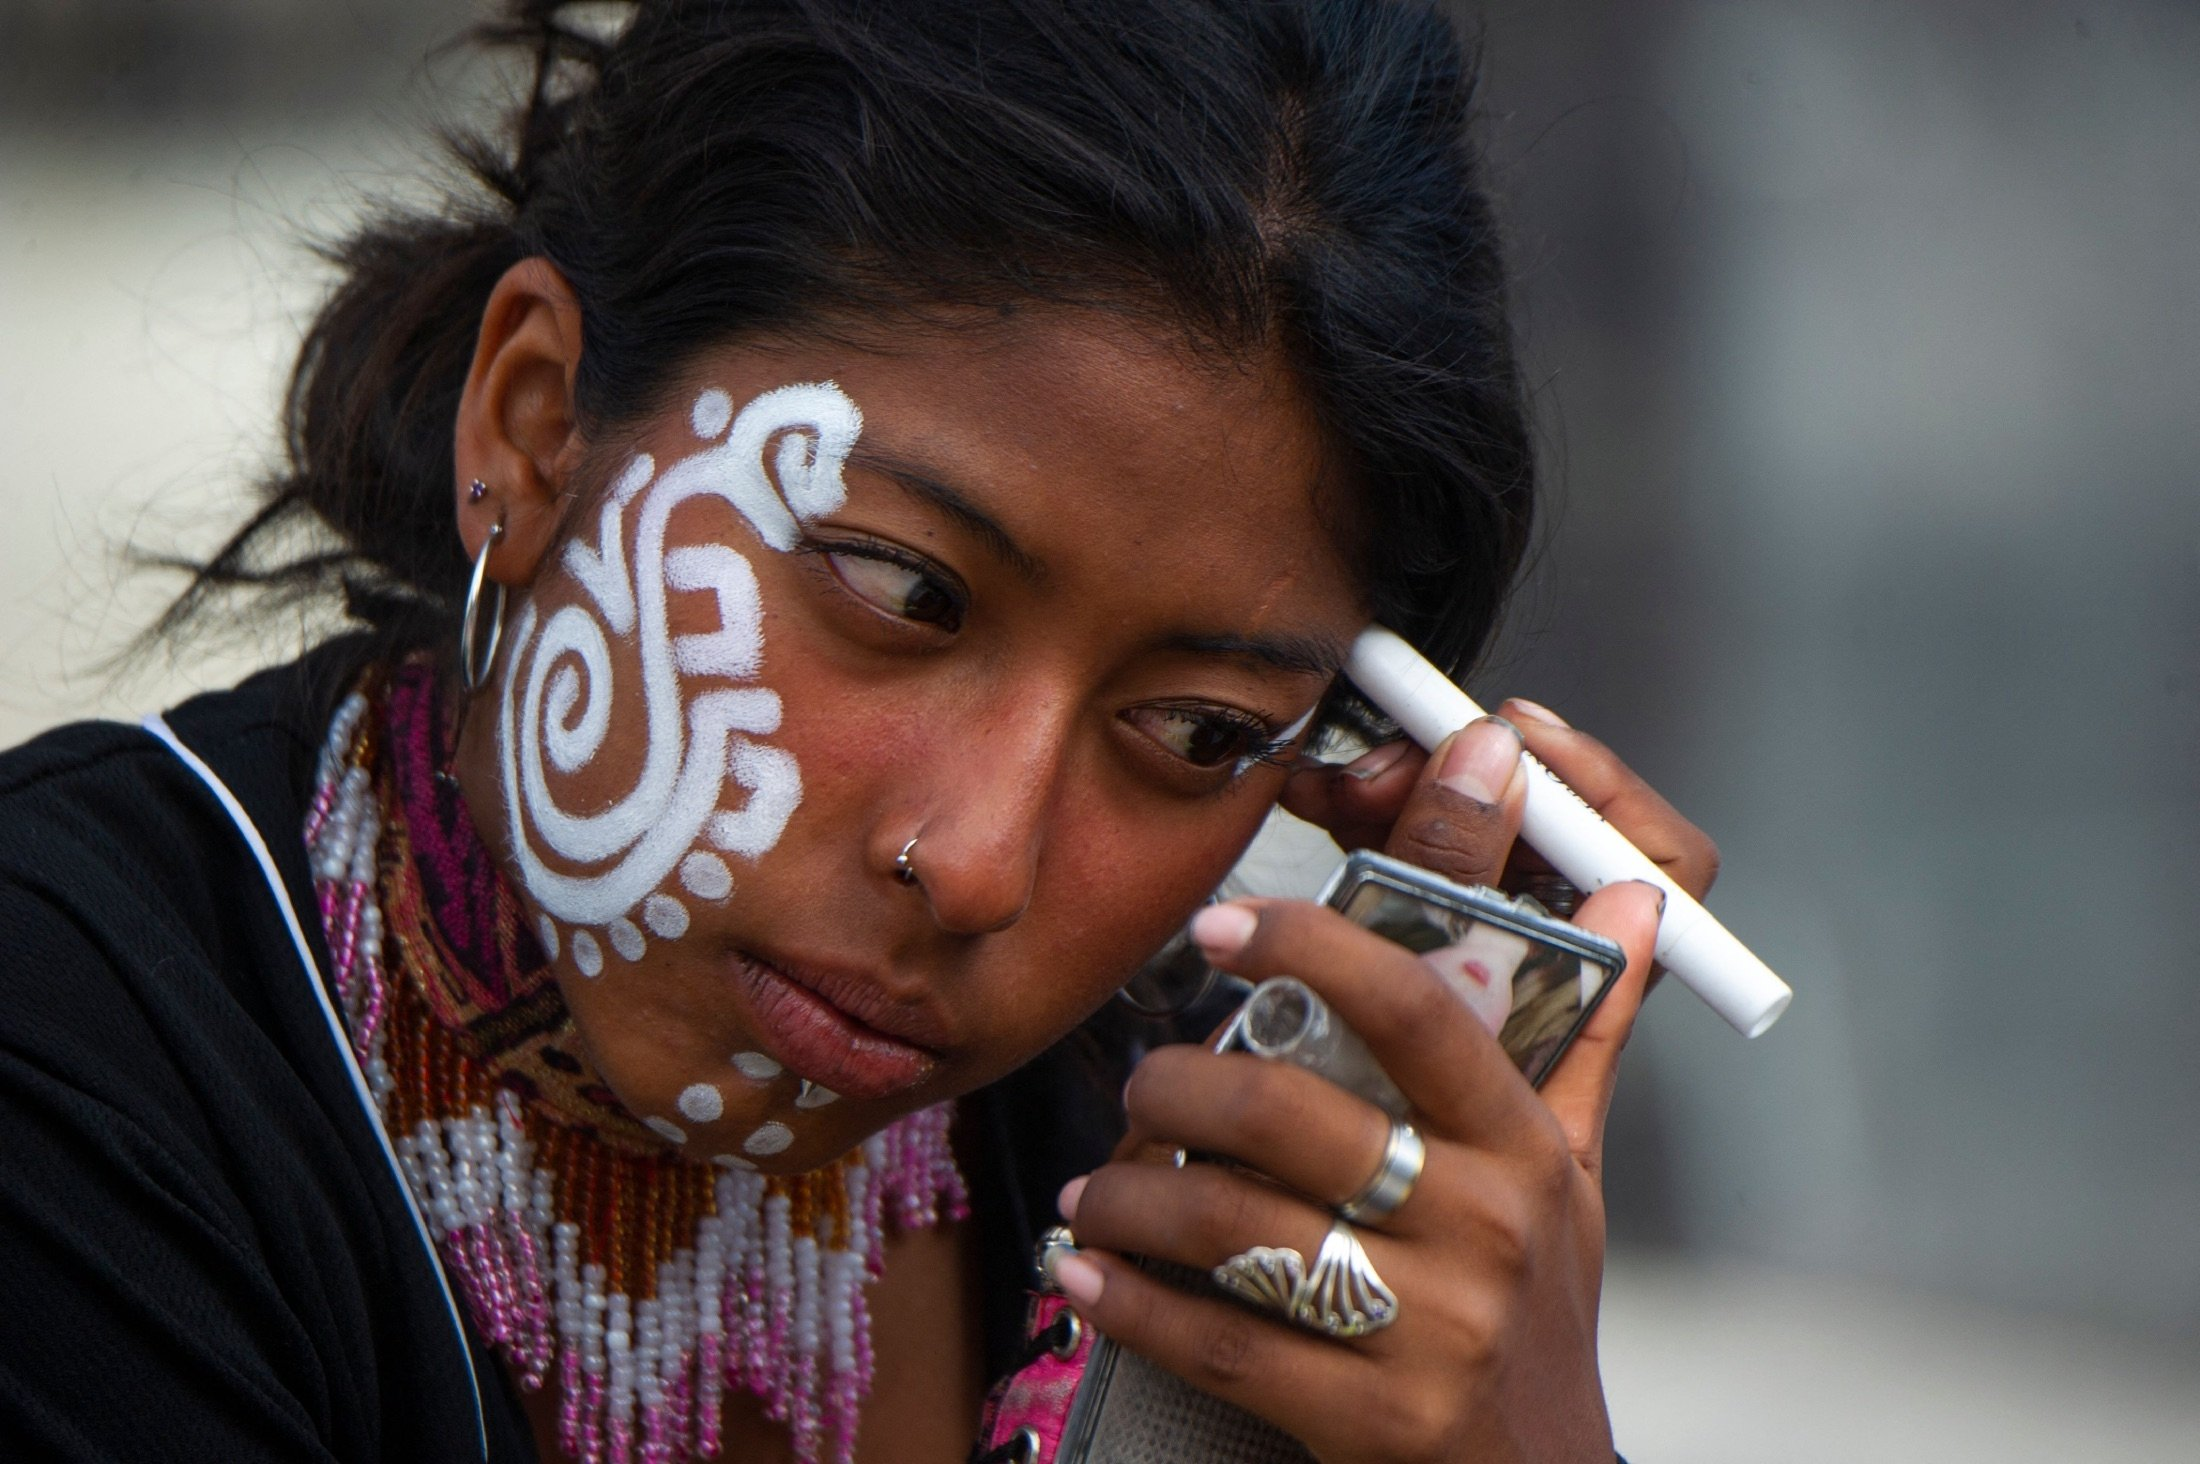 A woman prepares to perform an Aztec dance at the Zocalo square in Mexico City, Mexico, July 31, 2021. (AFP Photo)